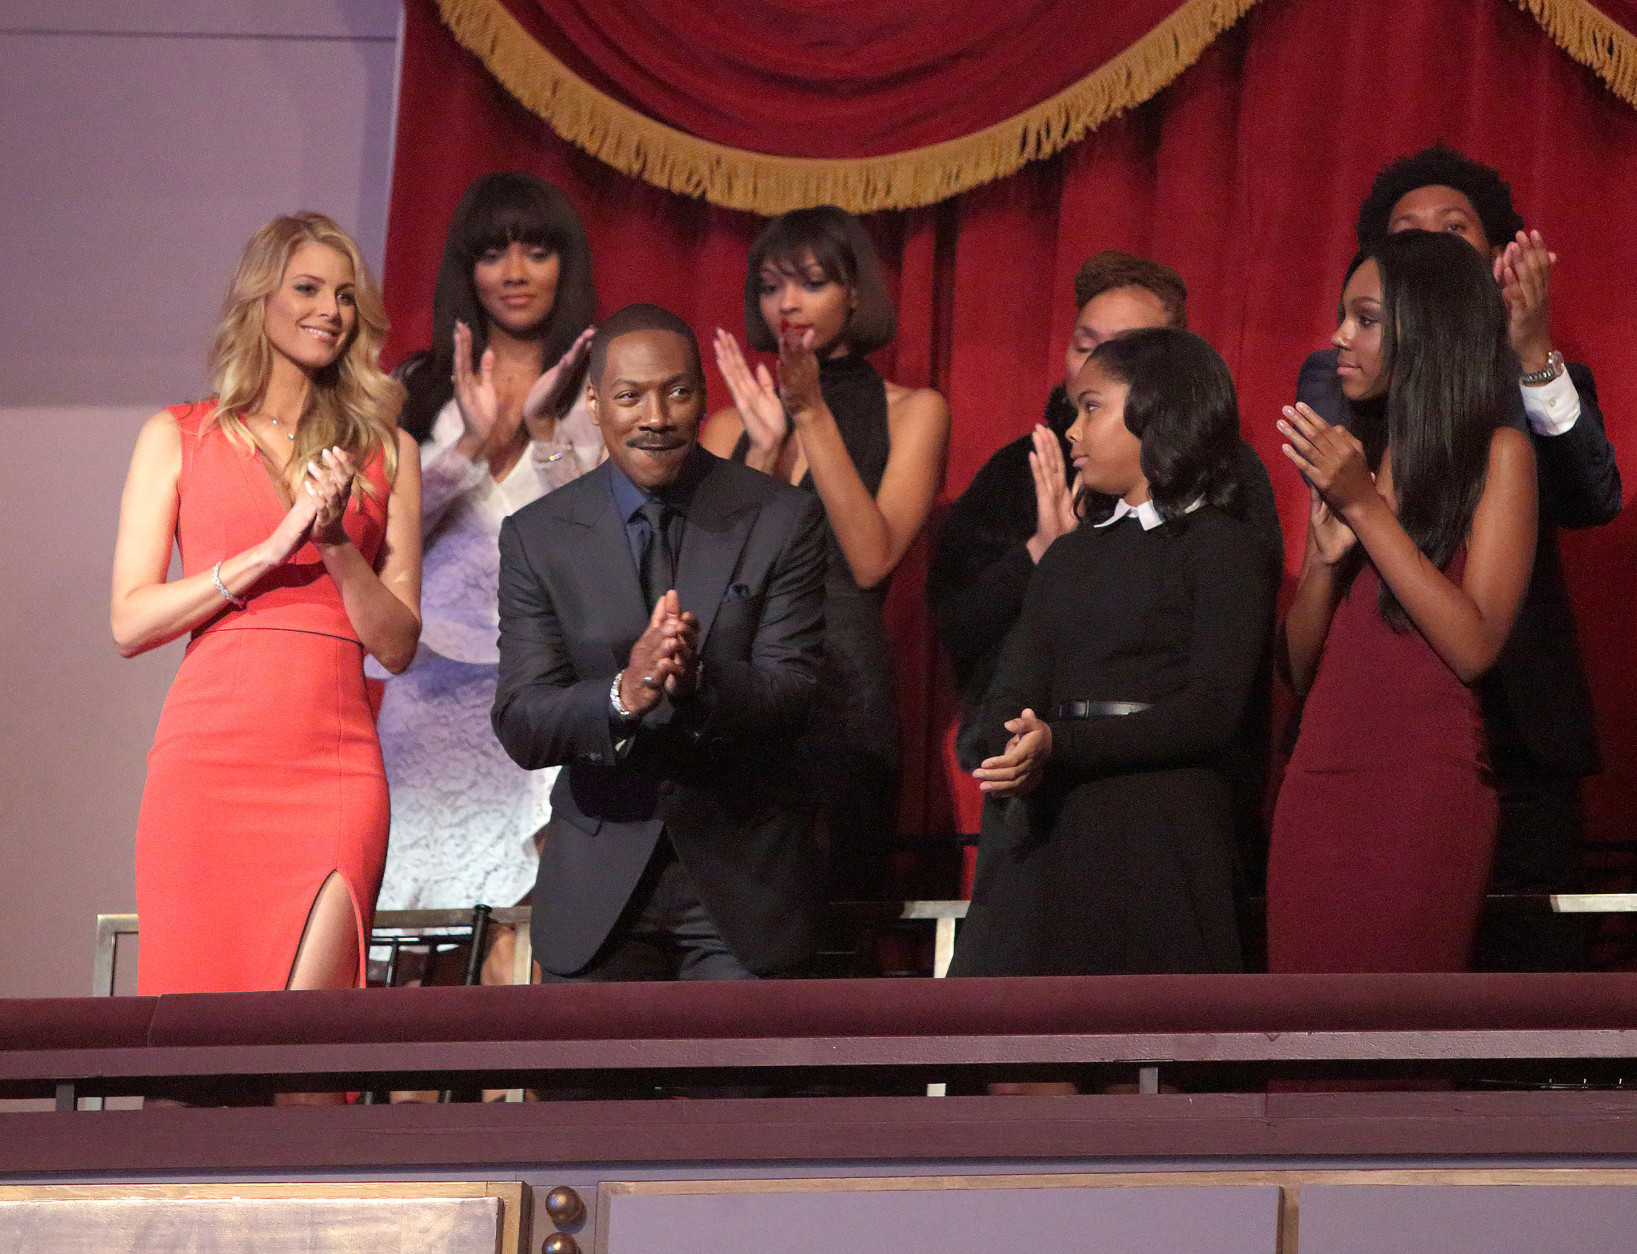 Eddie Murphy is honored with the Mark Twain Prize for American Humor at the Kennedy Center for the Performing Arts on Sunday, Oct. 18, 2015, in Washington. (Photo by Owen Sweeney/Invision/AP)